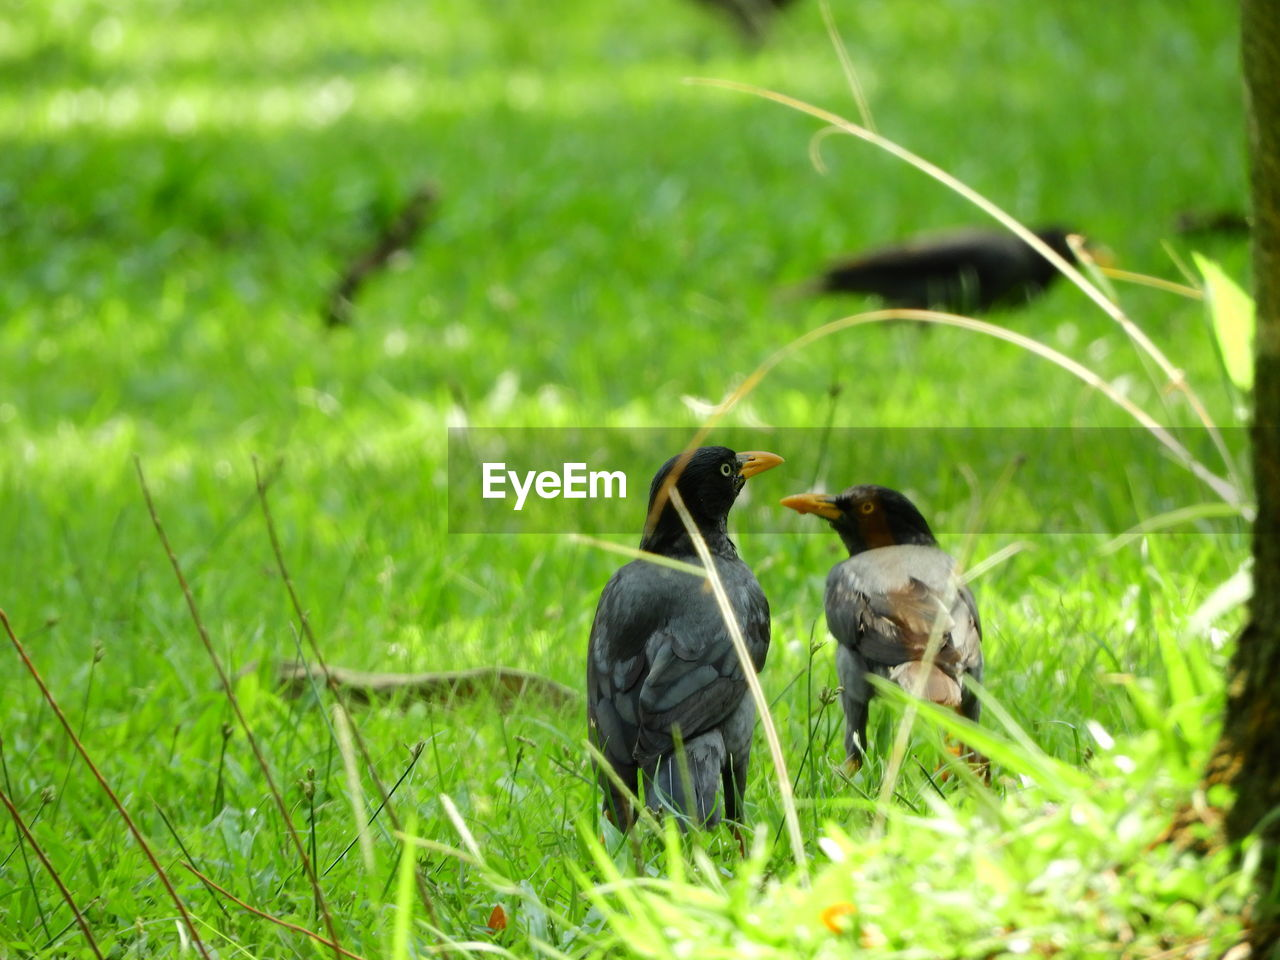 animal themes, animal, bird, group of animals, plant, animal wildlife, vertebrate, green color, animals in the wild, grass, land, nature, field, no people, day, two animals, young animal, selective focus, focus on foreground, young bird, outdoors, animal family, care